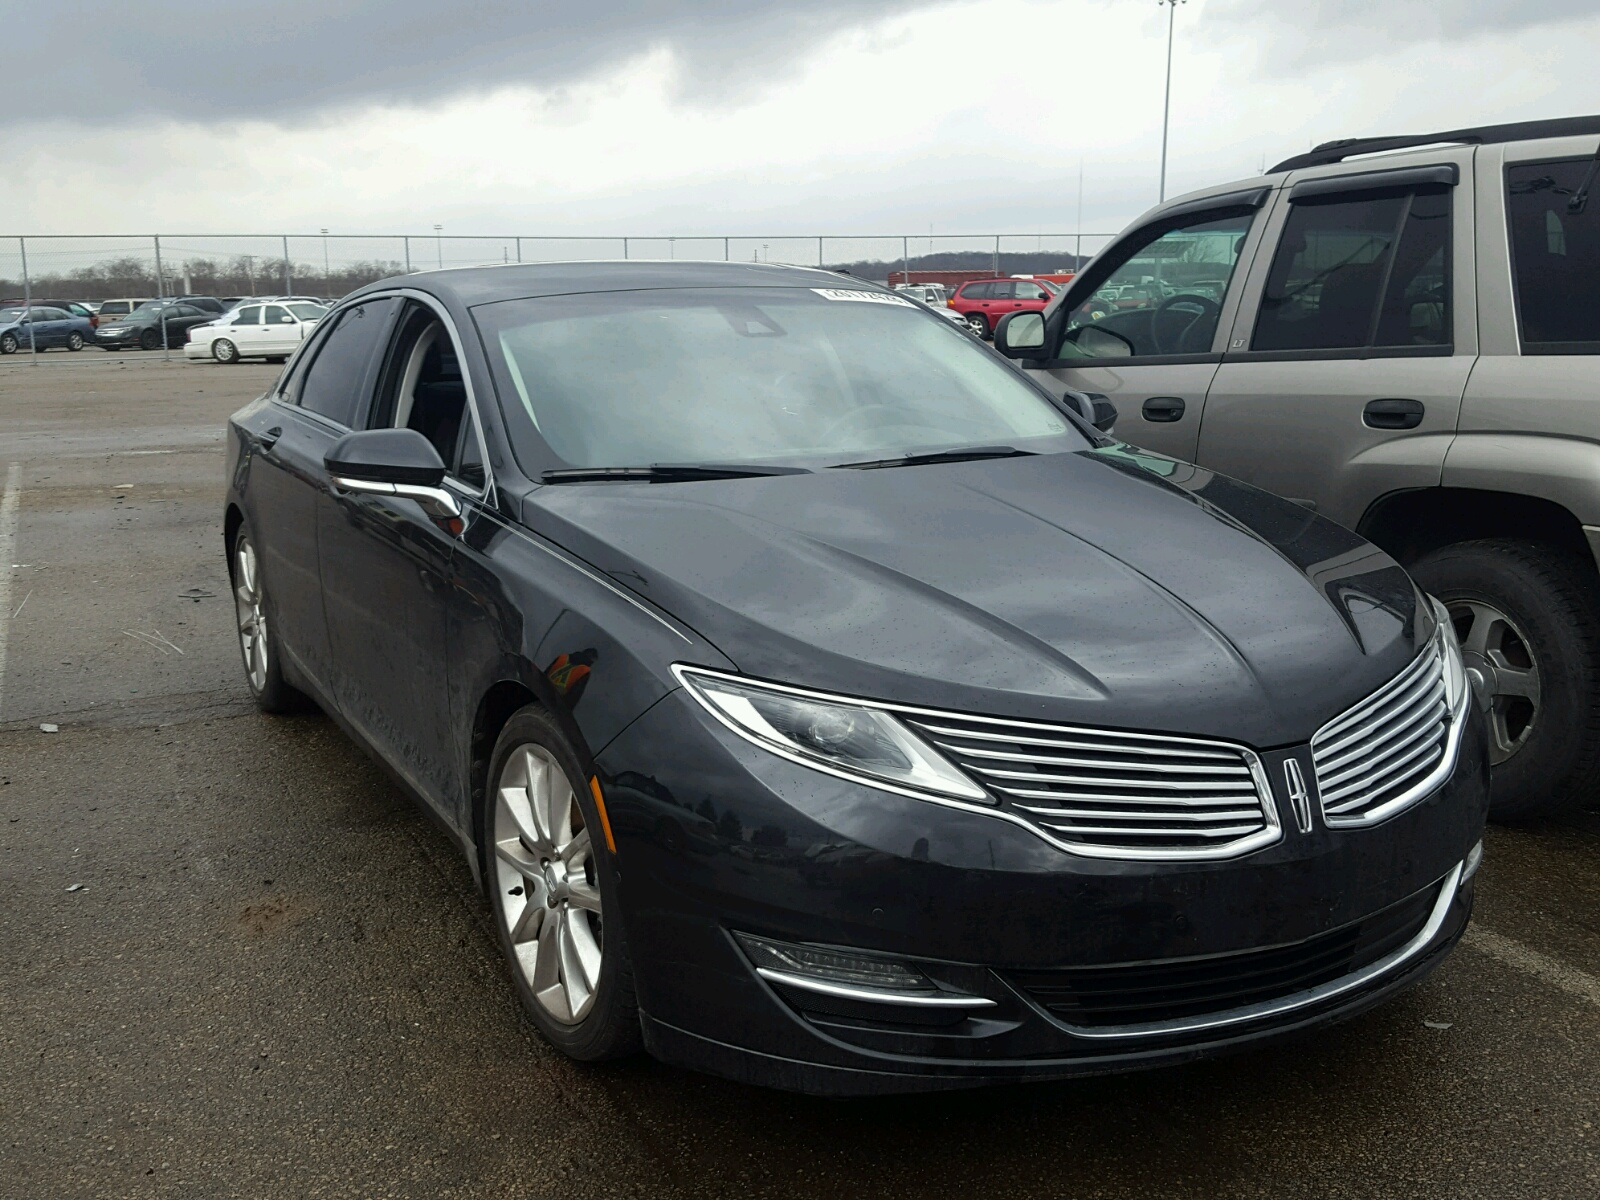 for buds sale auto img lidia awd mkz lincoln call listing used